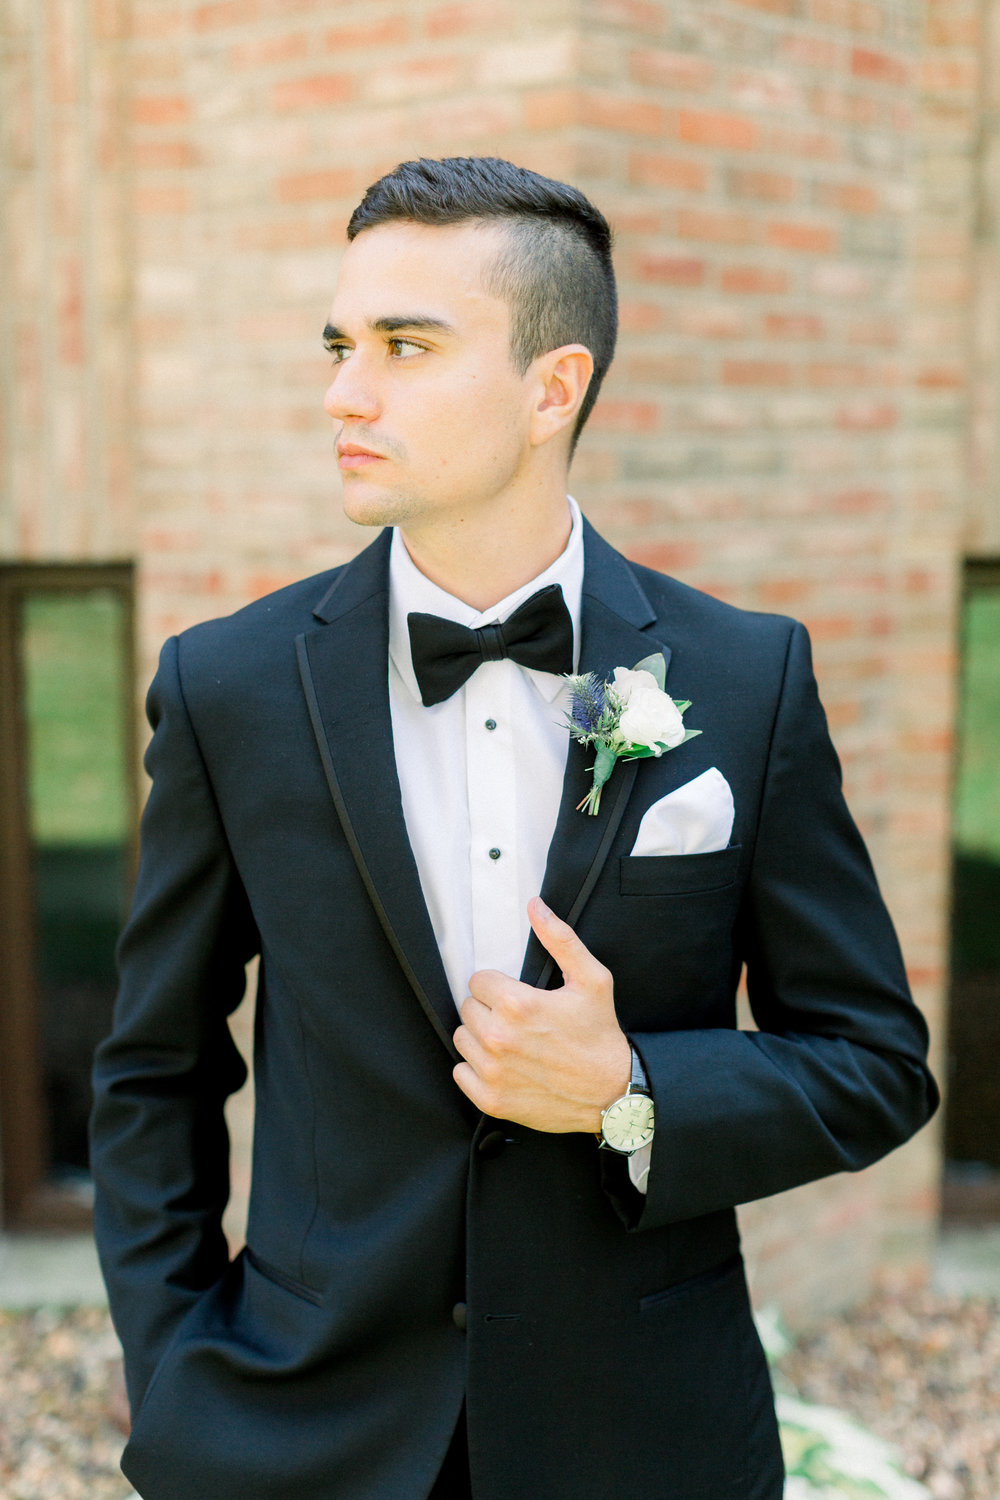 Groom in classic black tuxedo and bowtie getting ready for Pittsburgh wedding planned by Exhale Events. Find more wedding inspiration at exhale-events.com!